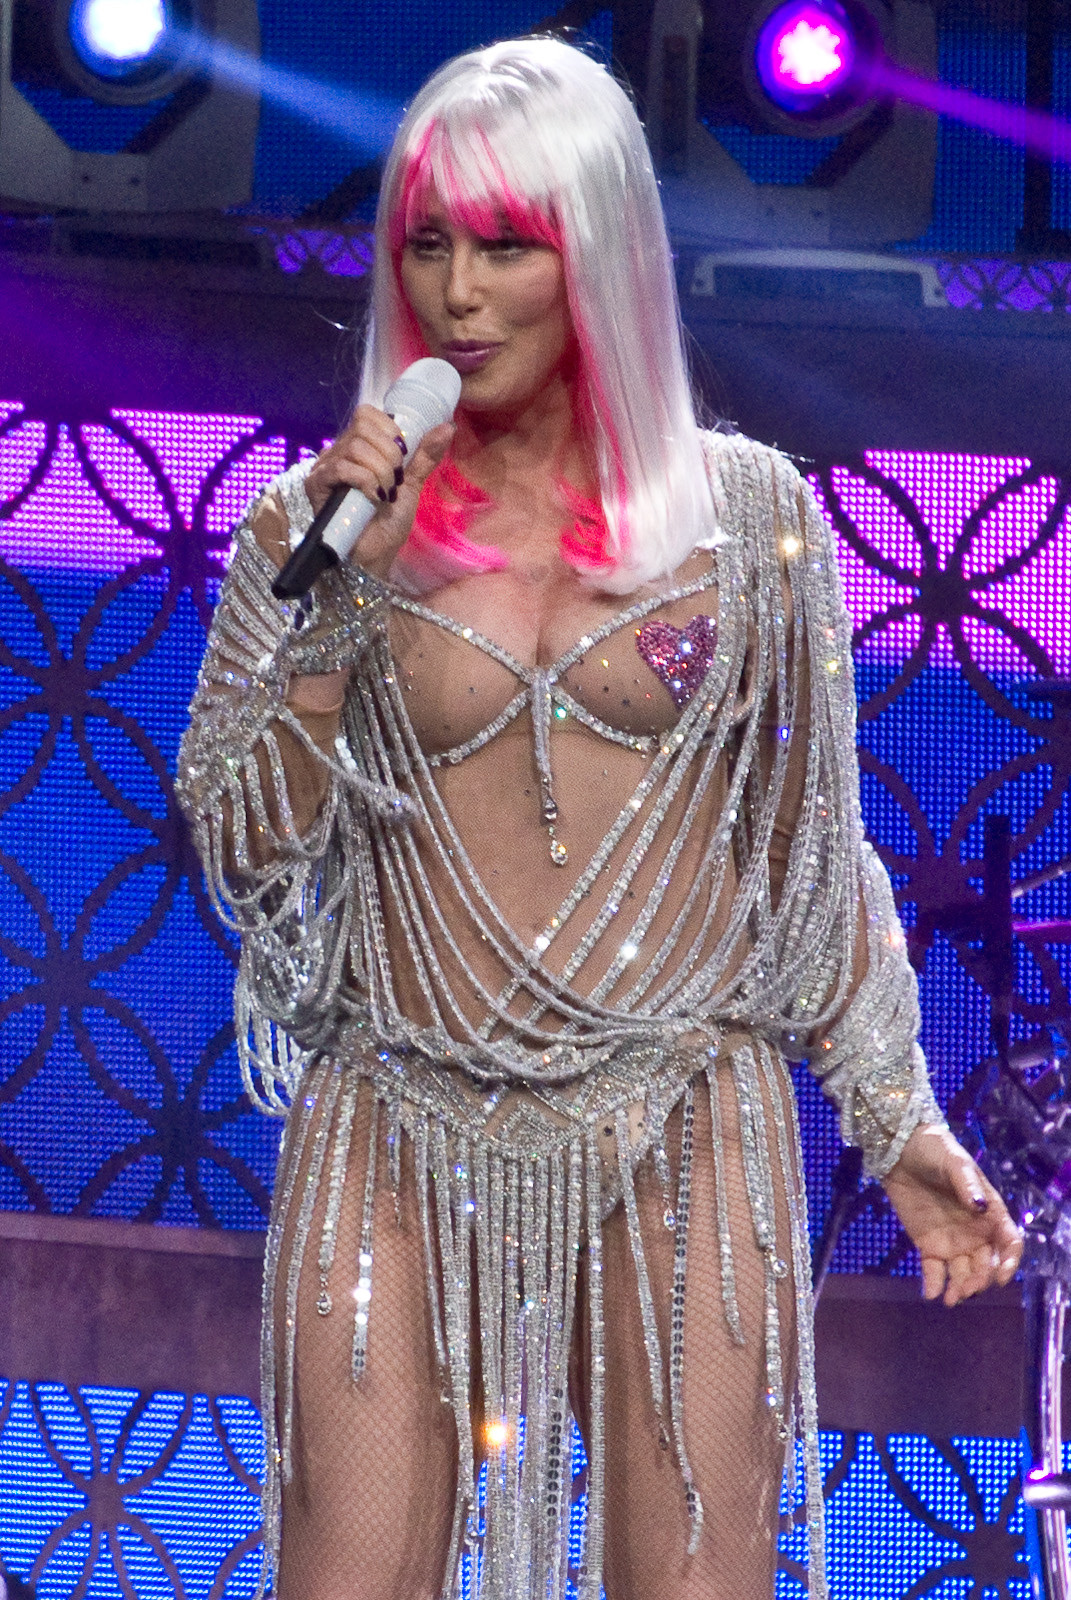 Cher at work, nearly naked. (Photo by David Carroll)